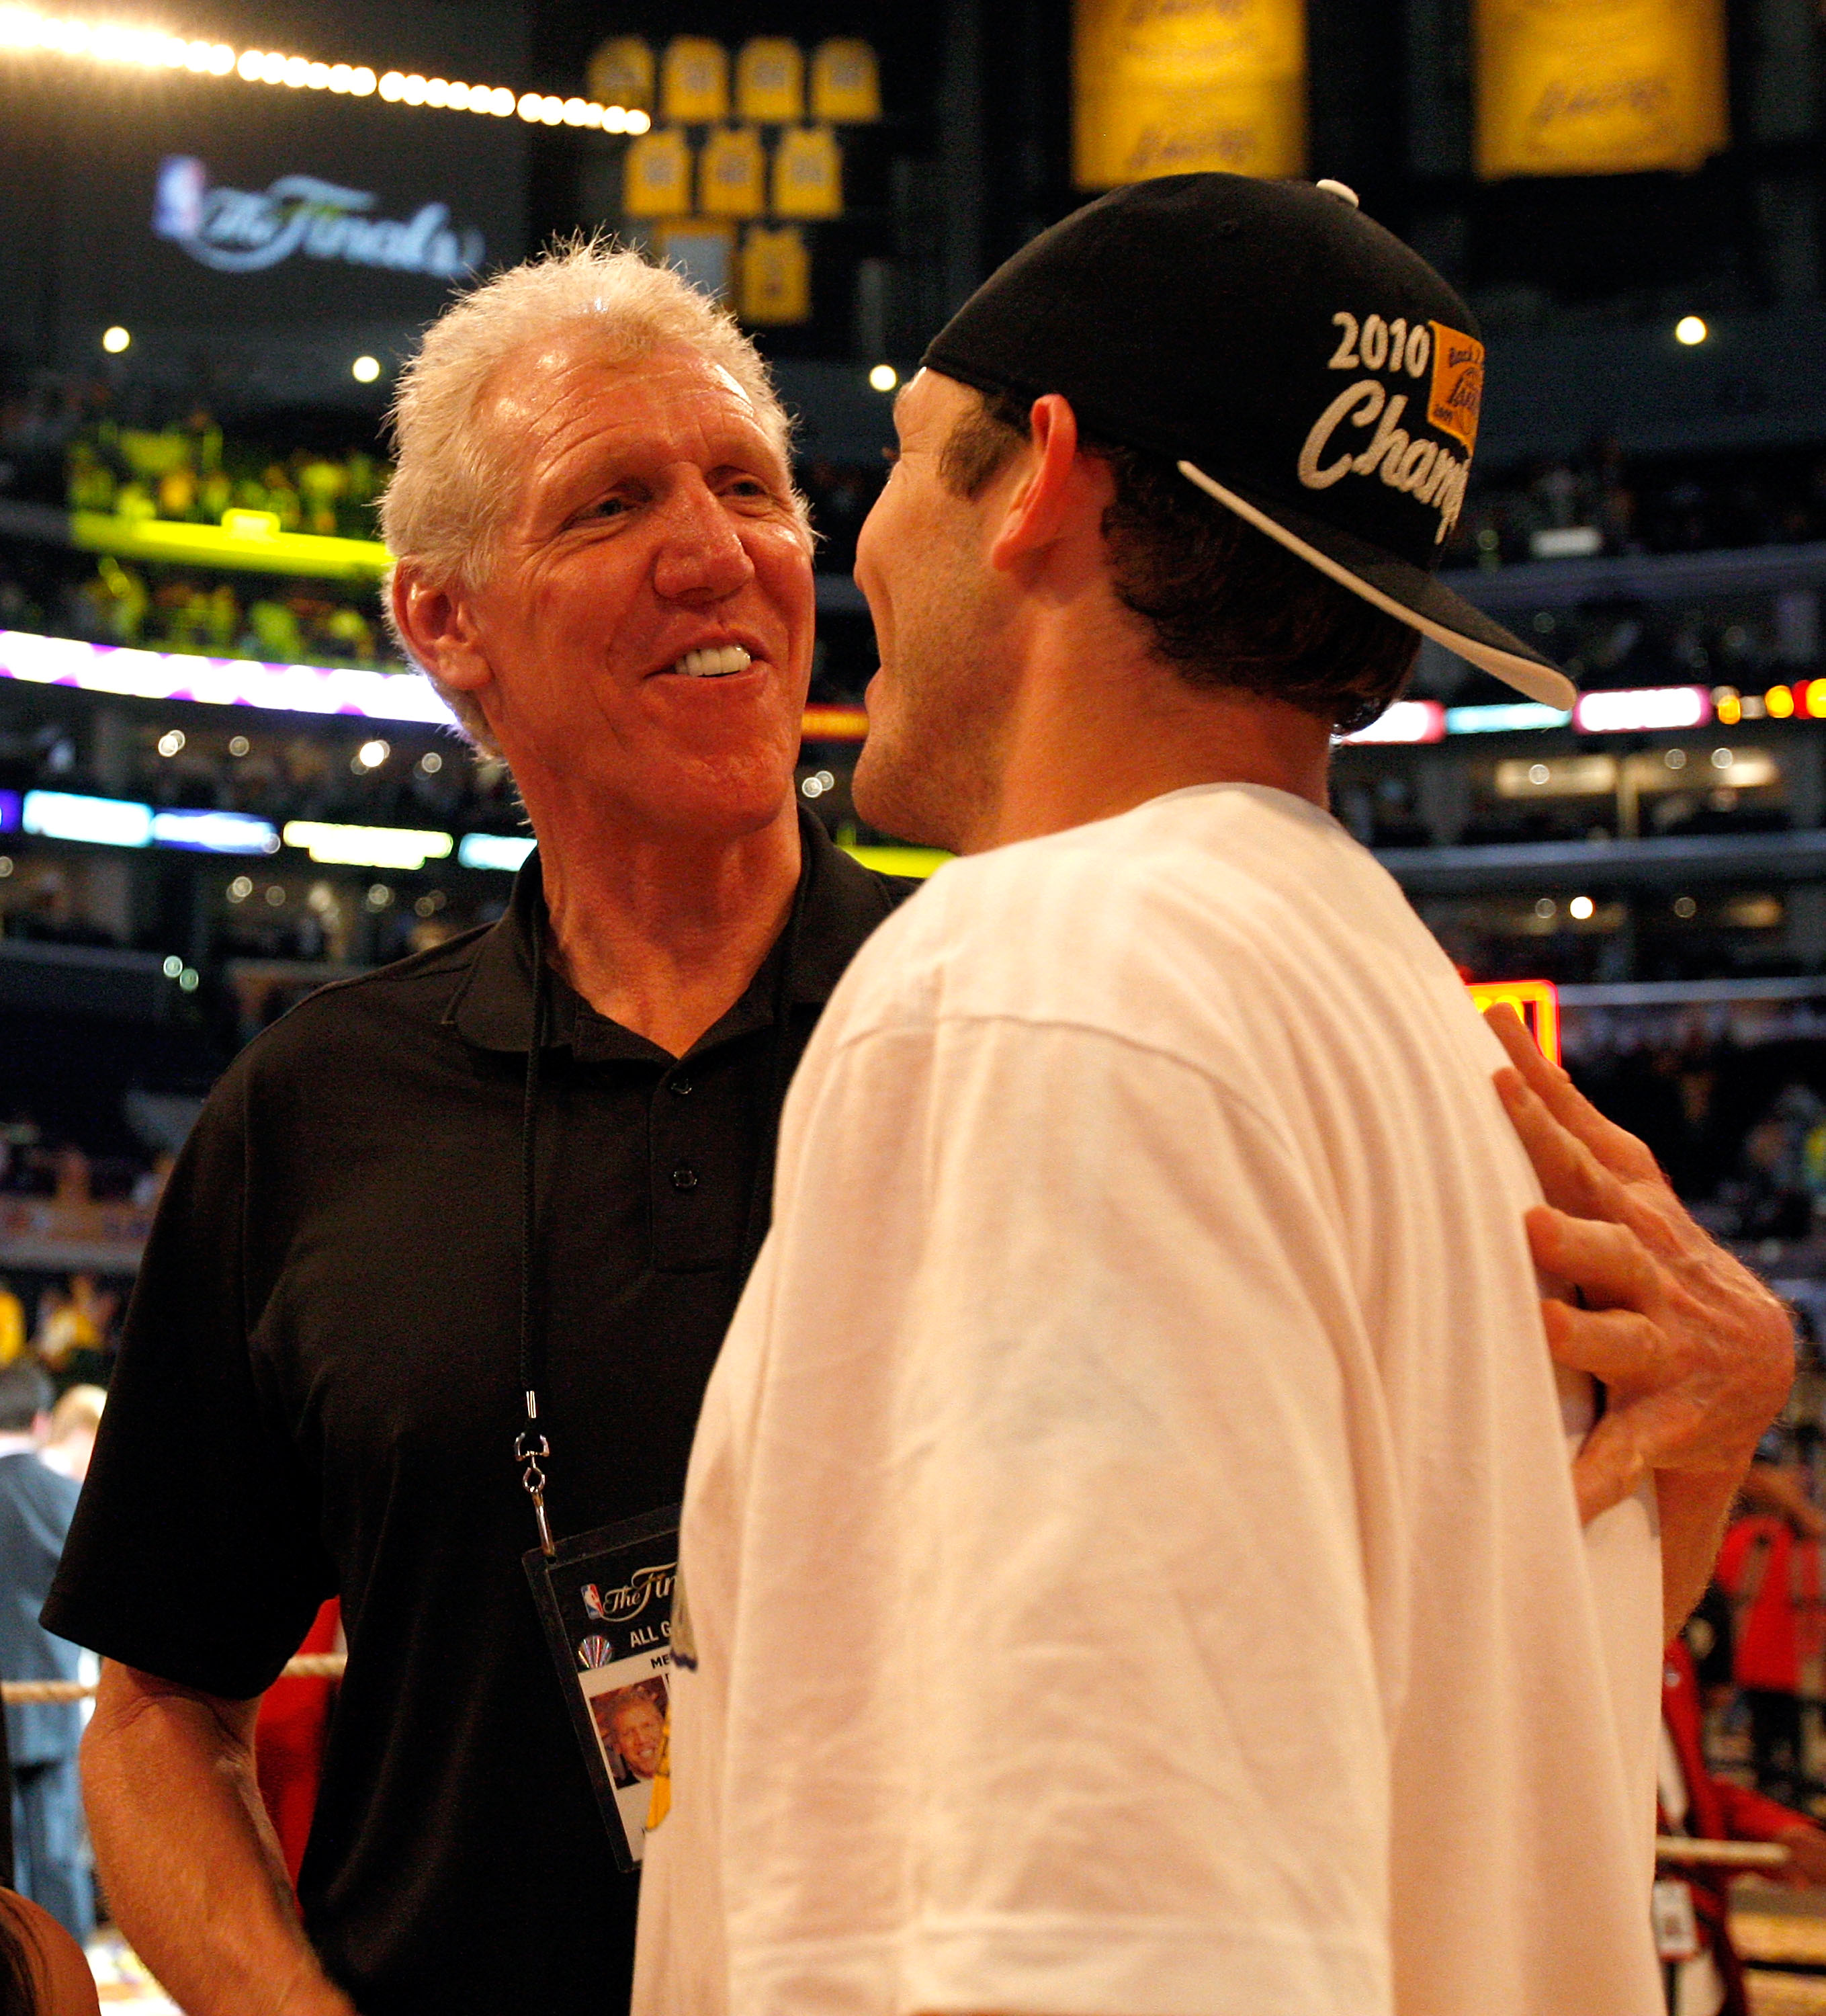 LOS ANGELES, CA - JUNE 17:  (R-L) Luke Walton #4 and father Bill Walton celebrate the Los Angeles Lakers 83-79 victory against the Boston Celtics in Game Seven of the 2010 NBA Finals at Staples Center on June 17, 2010 in Los Angeles, California.  NOTE TO